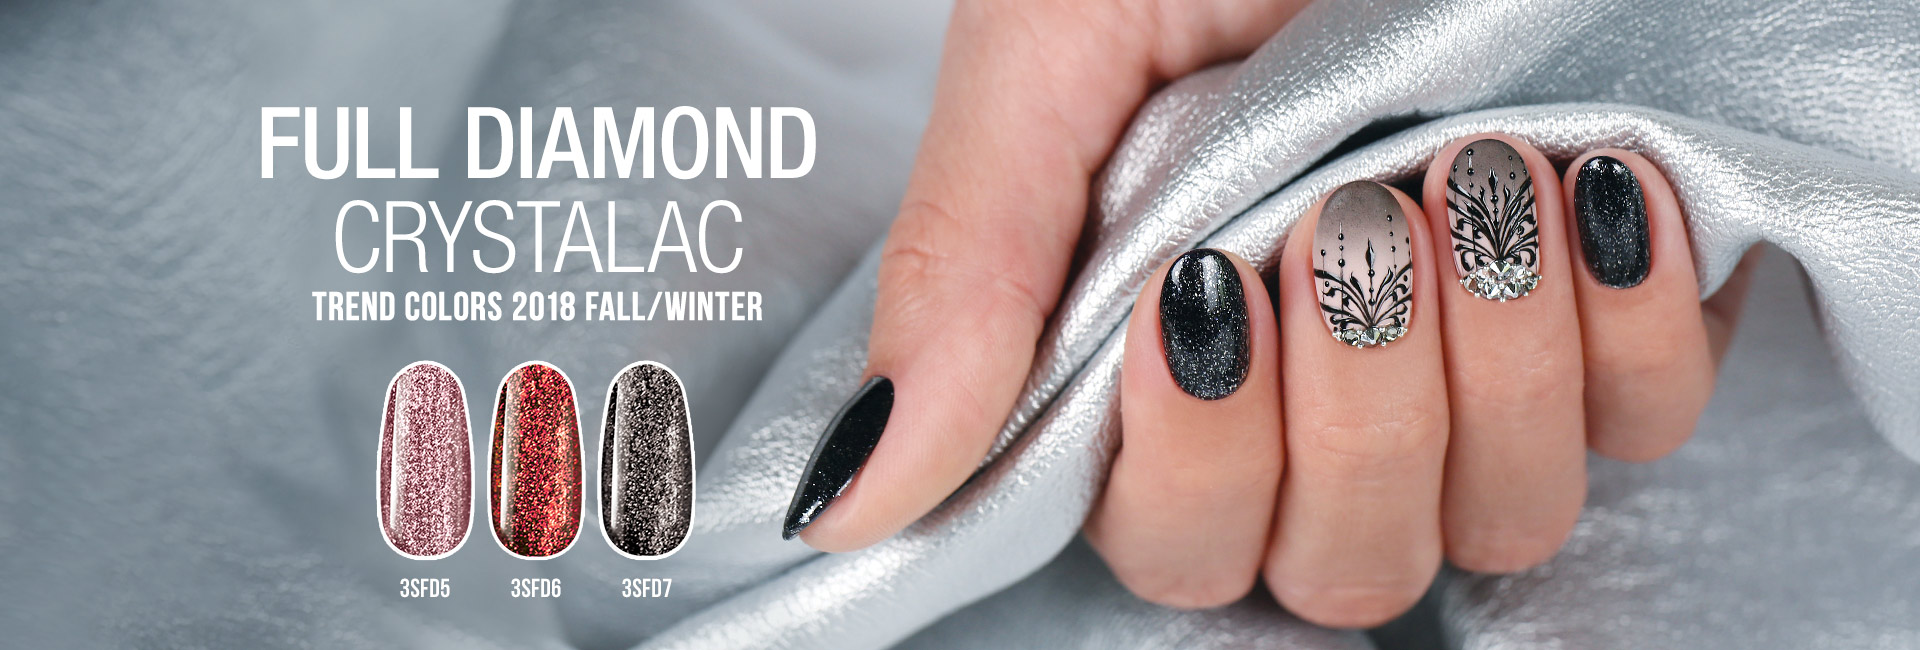 Full Diamond CrystaLac Trend Colors 2018 Autumn/Winter